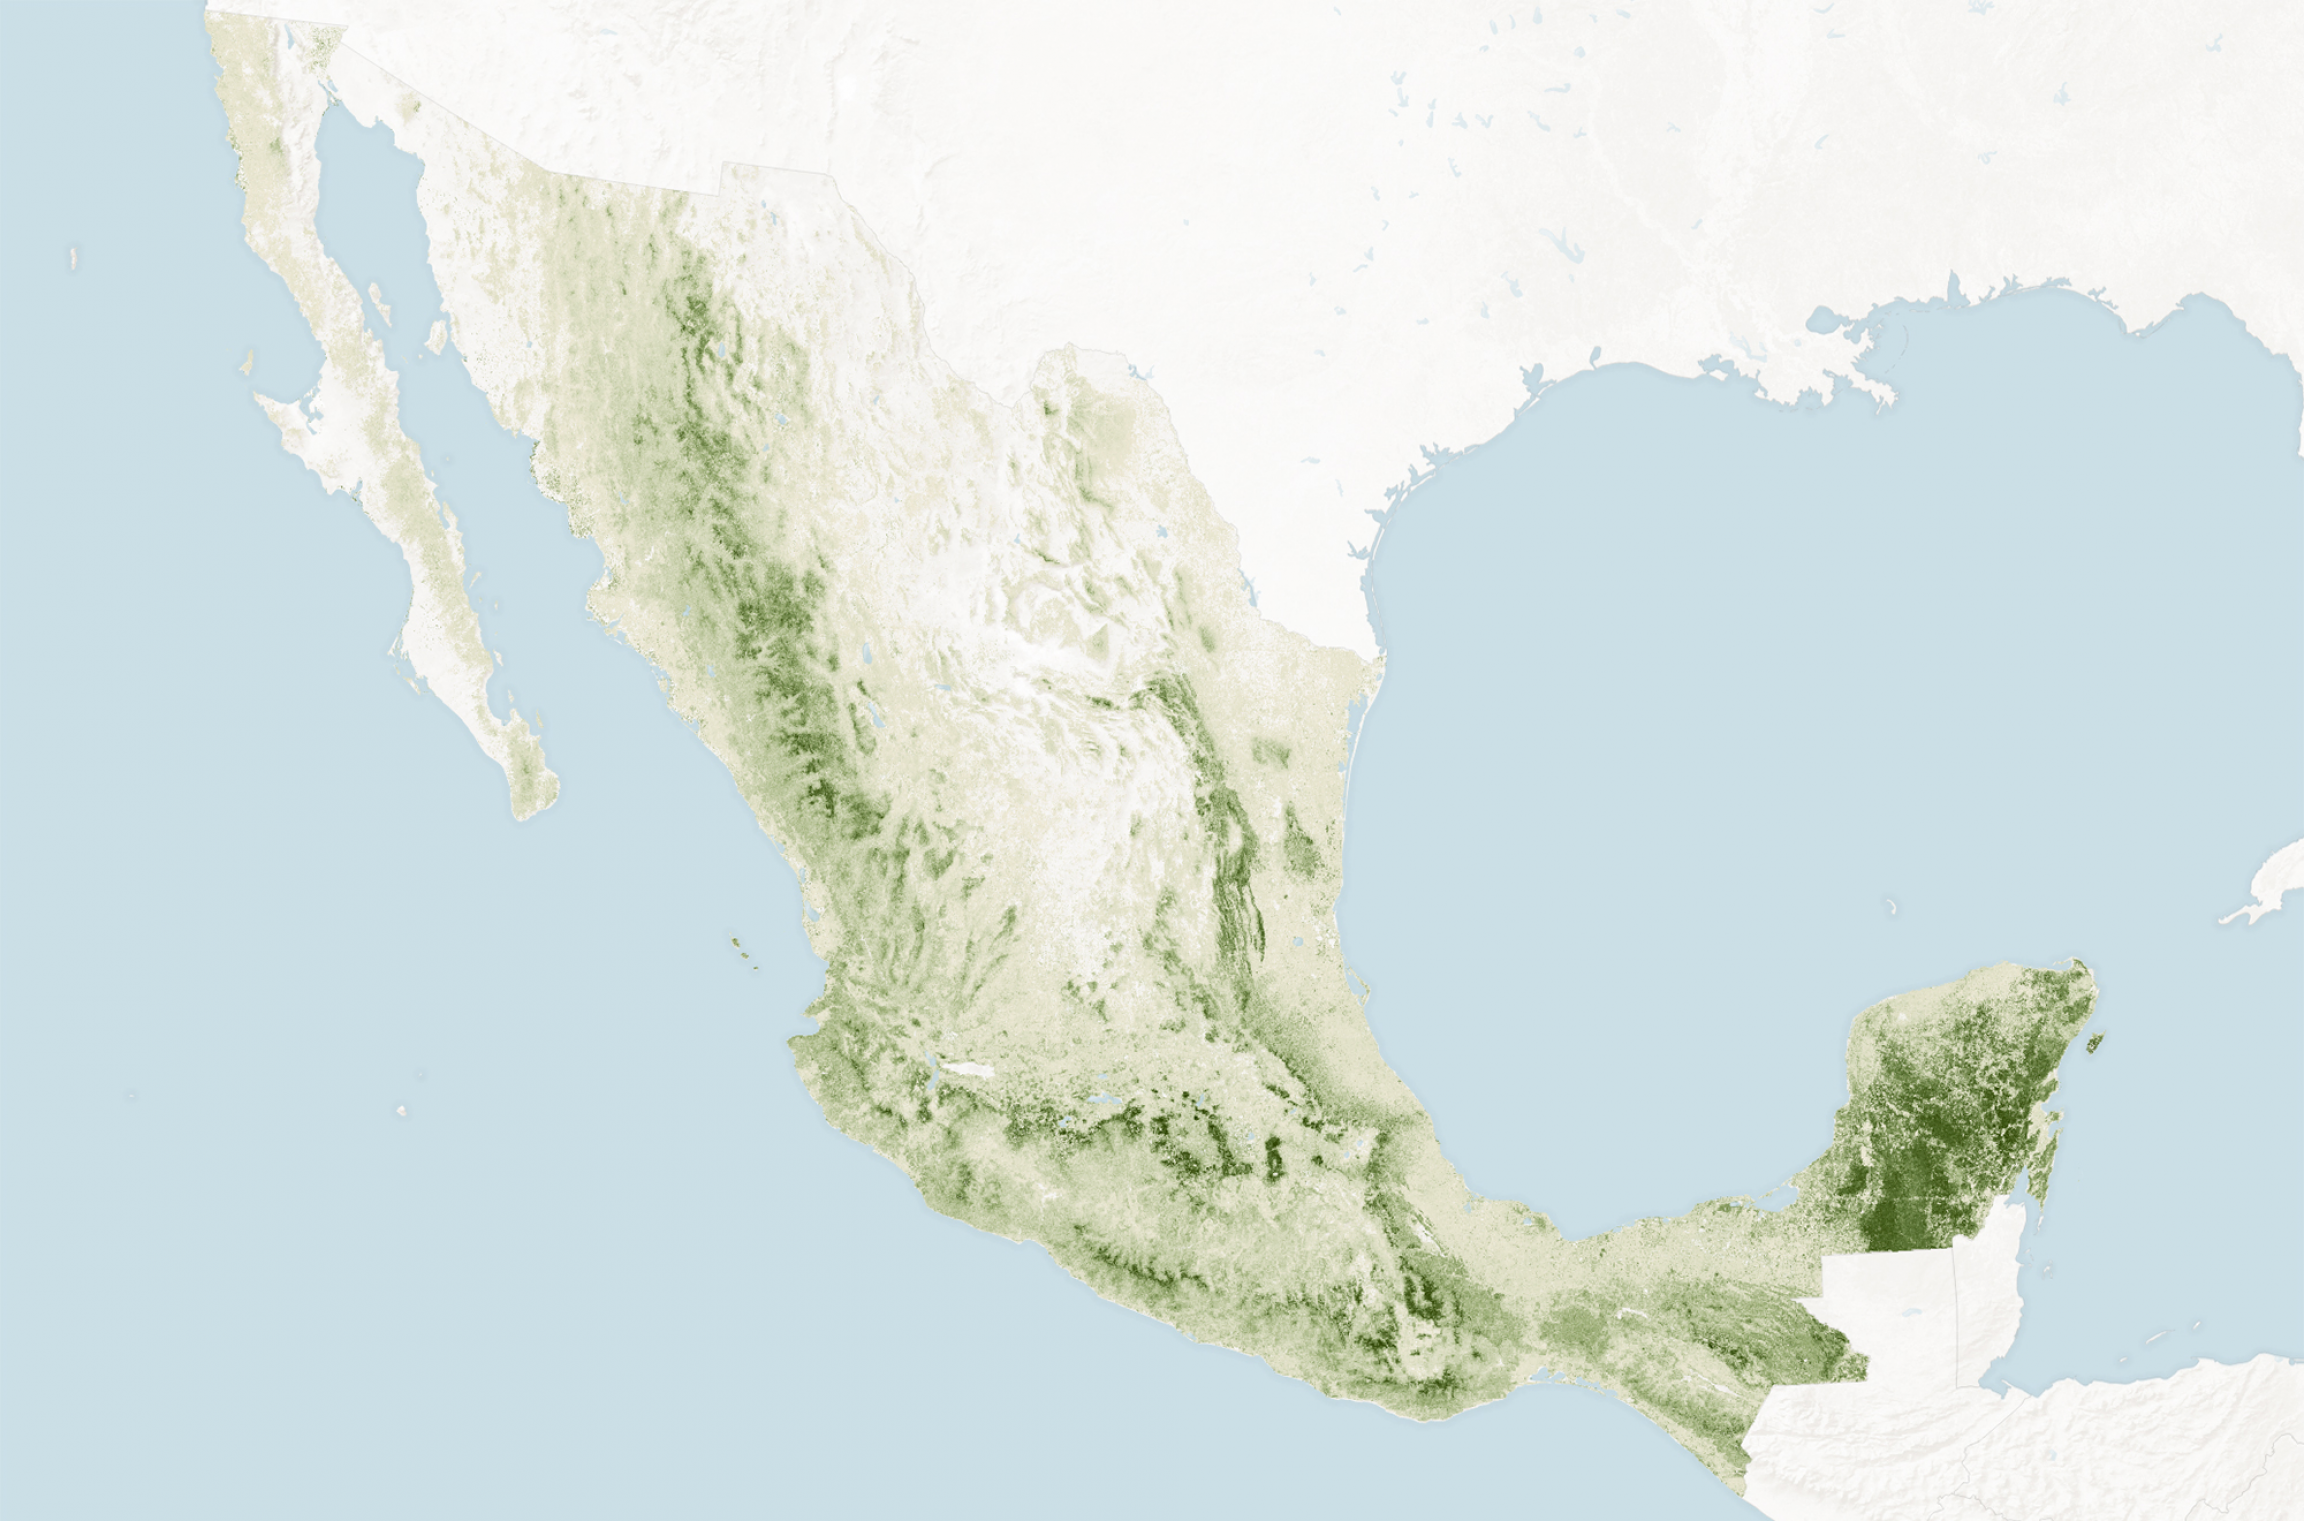 Map of Mexico's forests